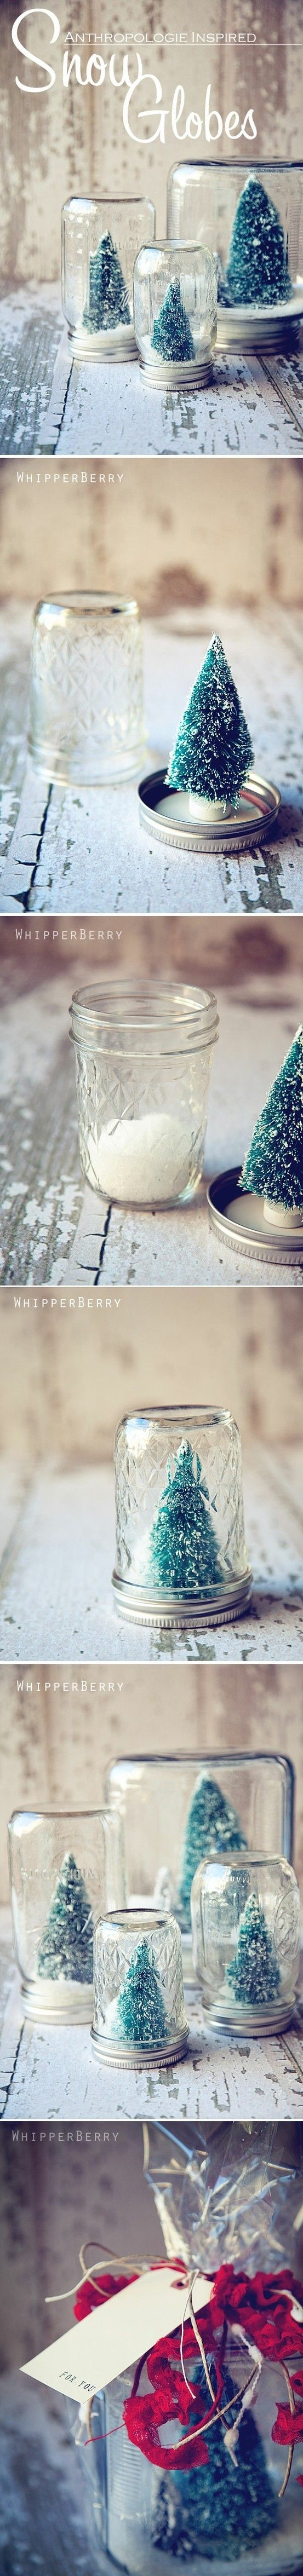 Make snow globes out of jars. | 26 Last-Minute DIY Christmas Hacks